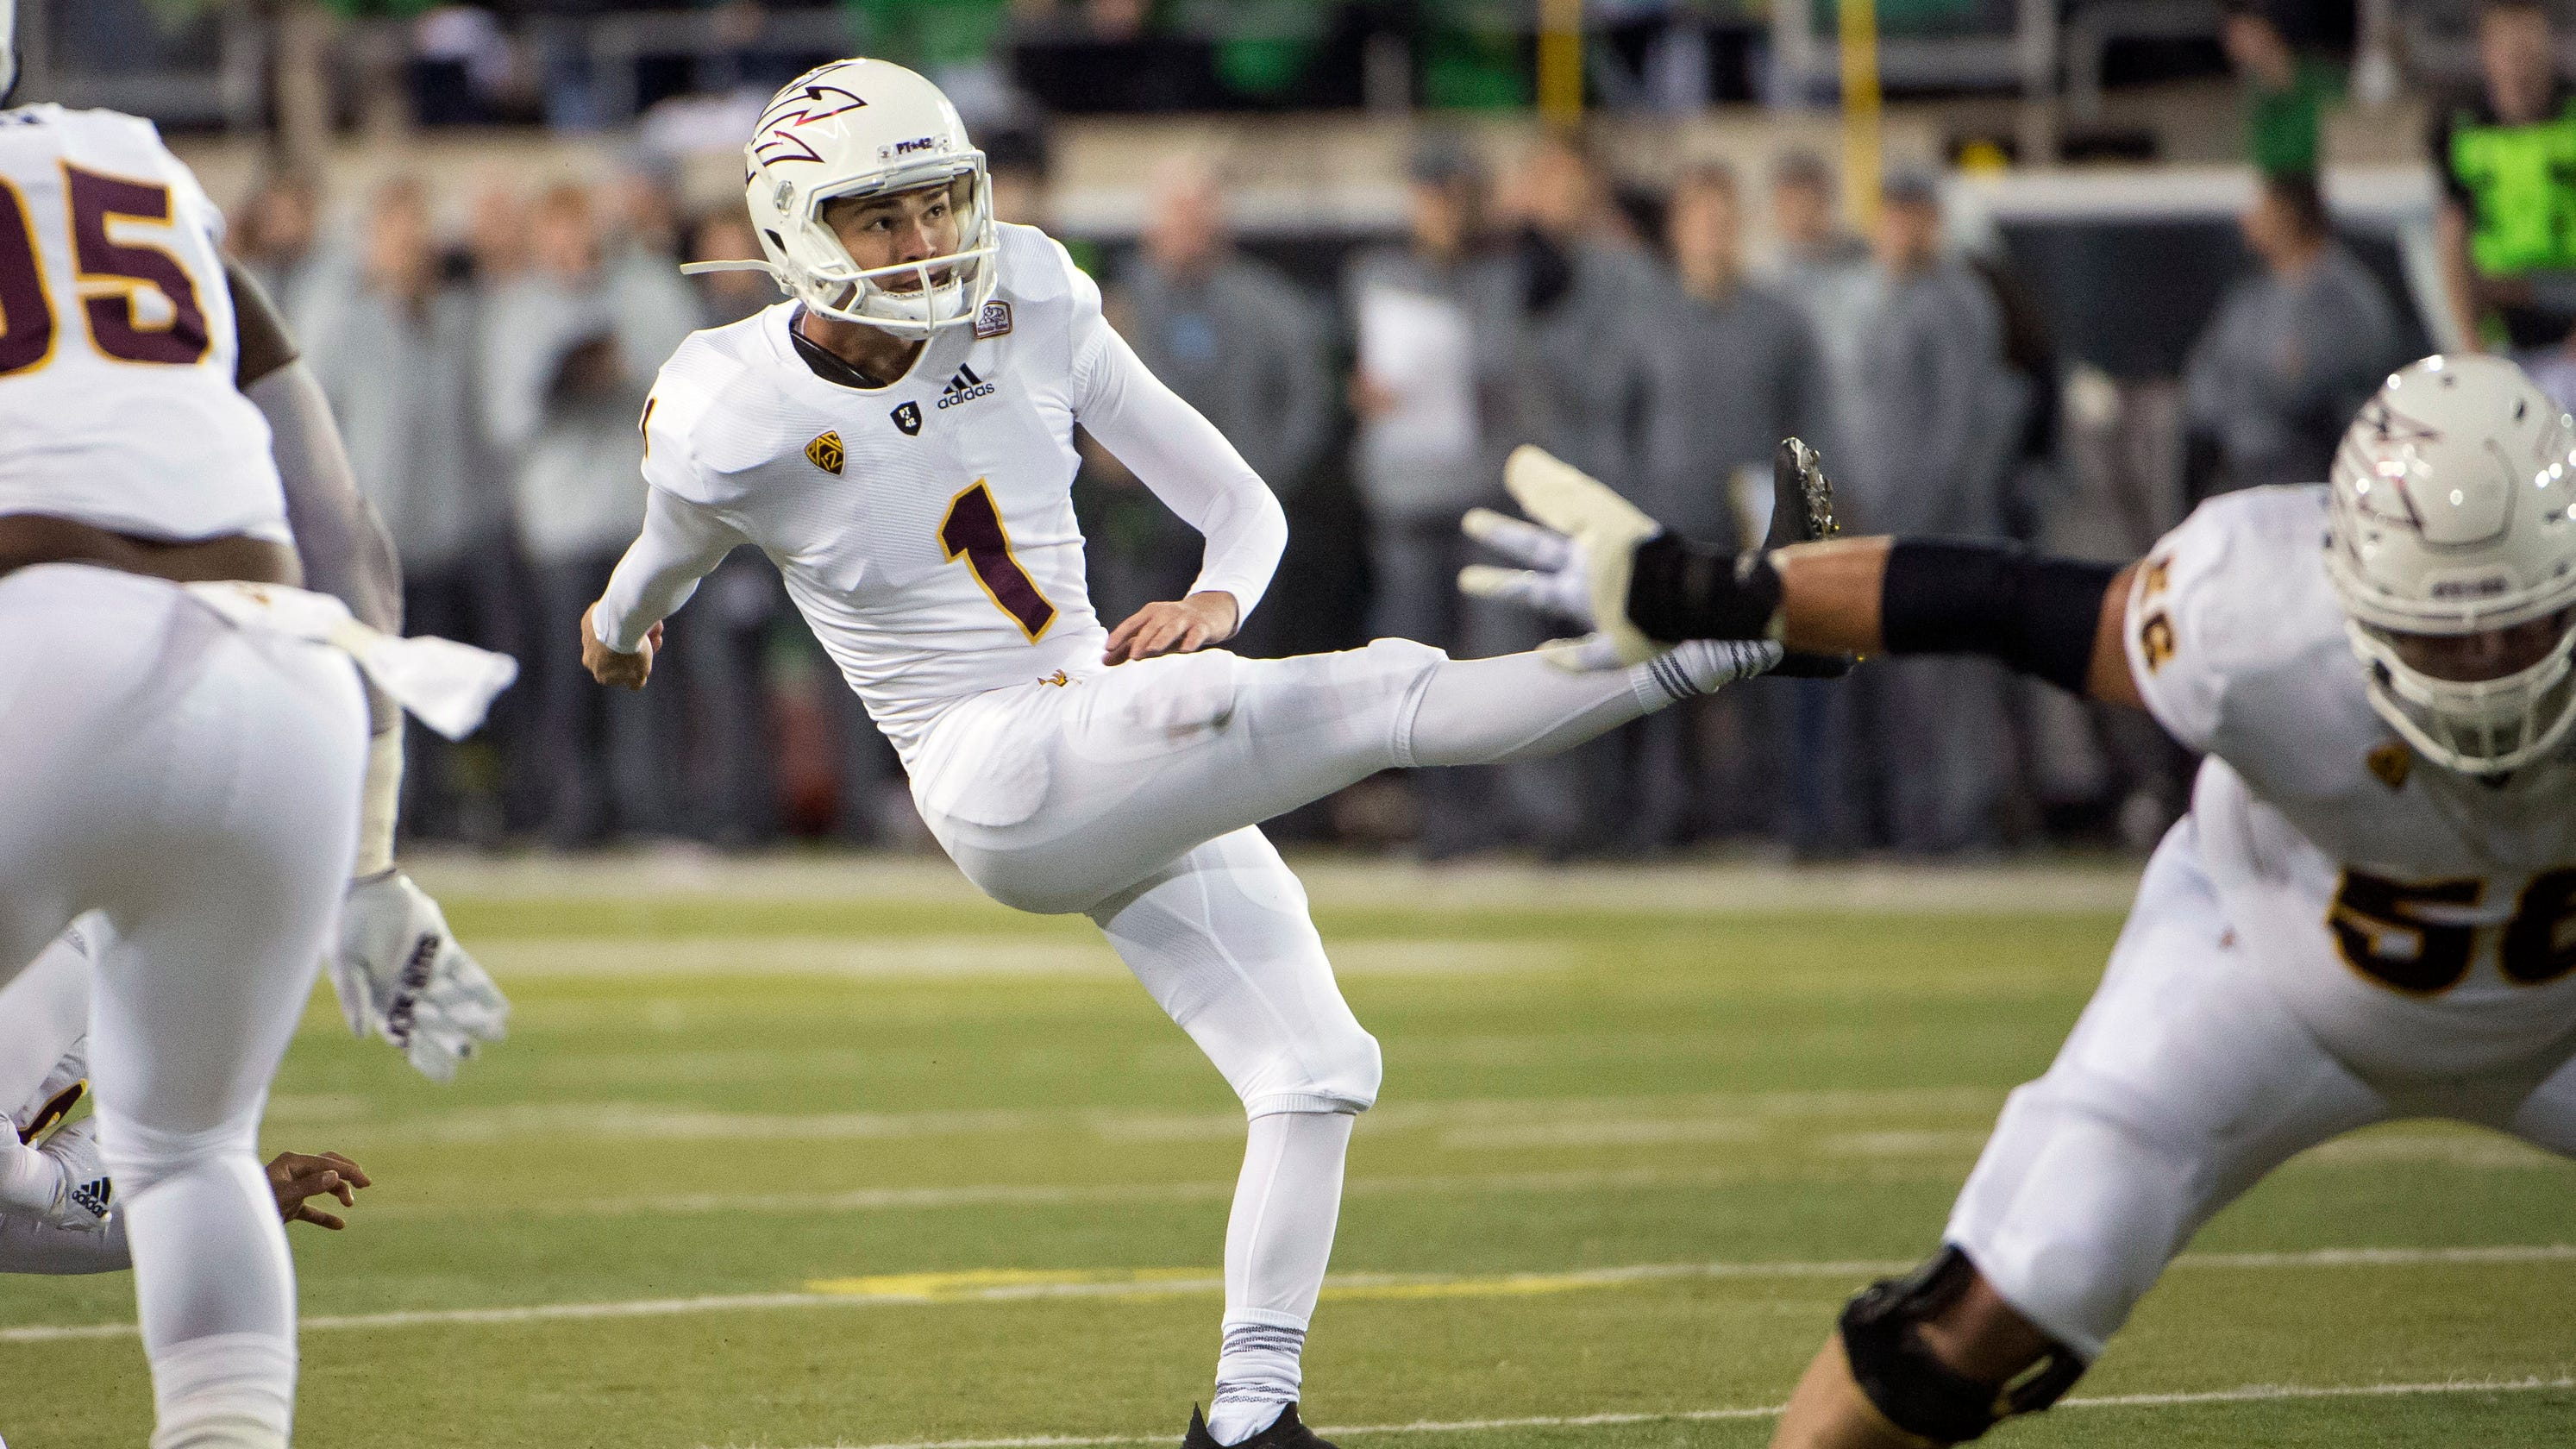 Former Arizona State kicker Brandon Ruiz to transfer to Mississippi State after all